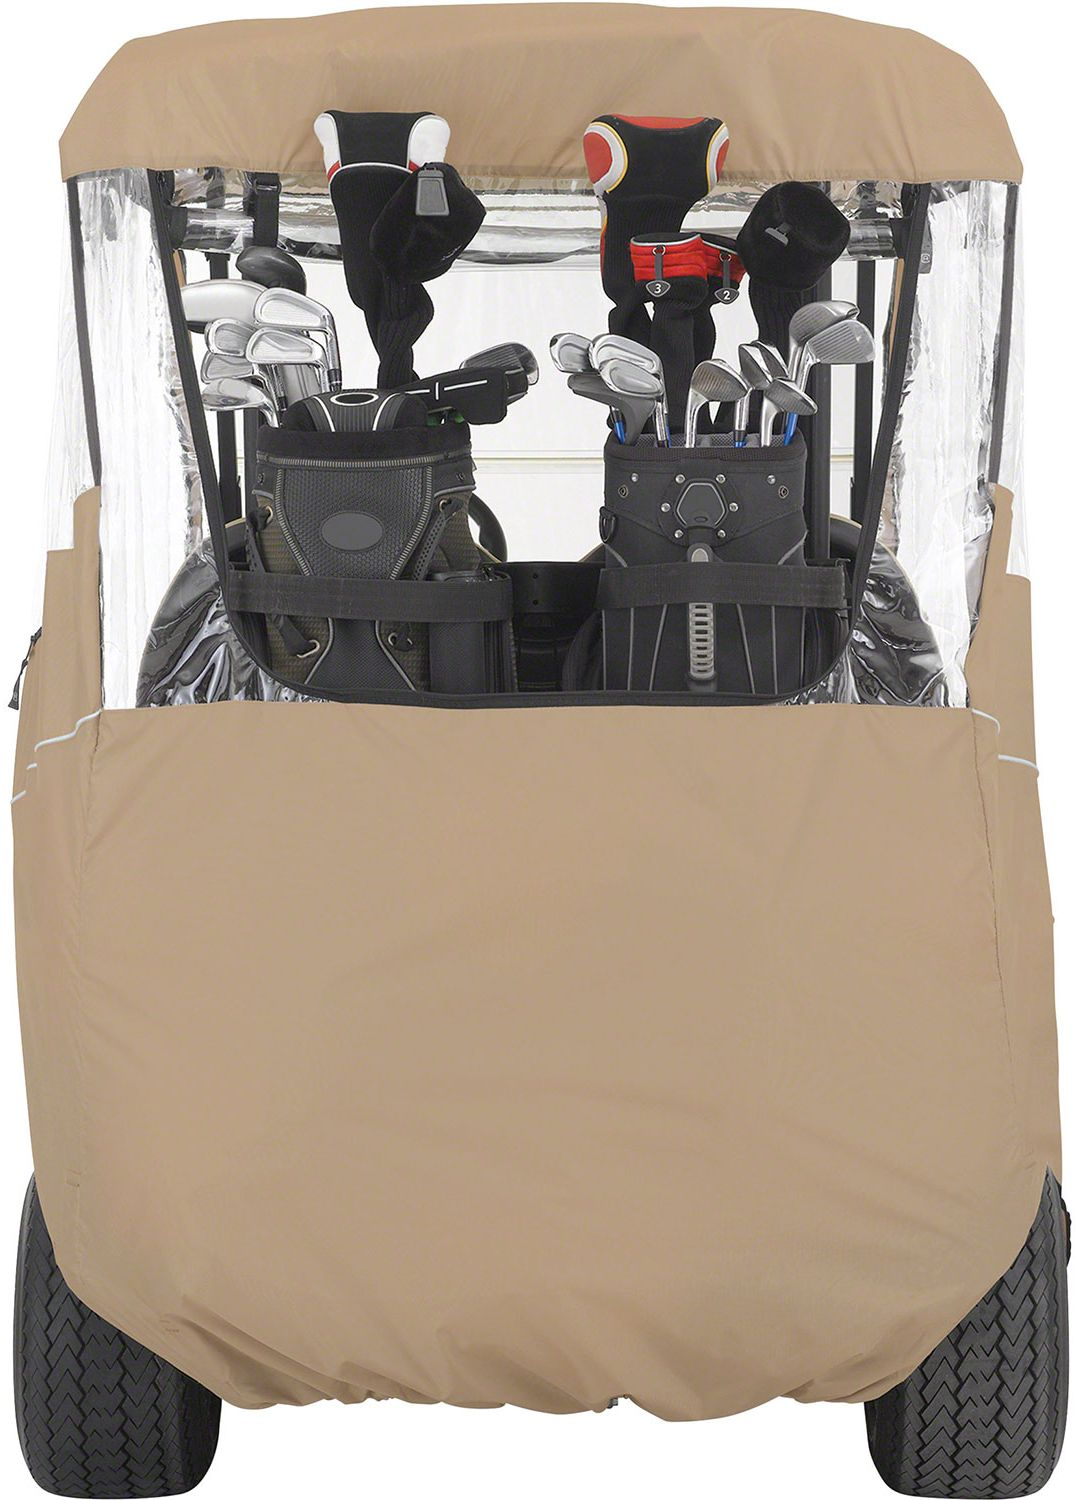 Awesome Classic Accessories Fairway Travel Short Golf Cart Enclosure Caraccident5 Cool Chair Designs And Ideas Caraccident5Info